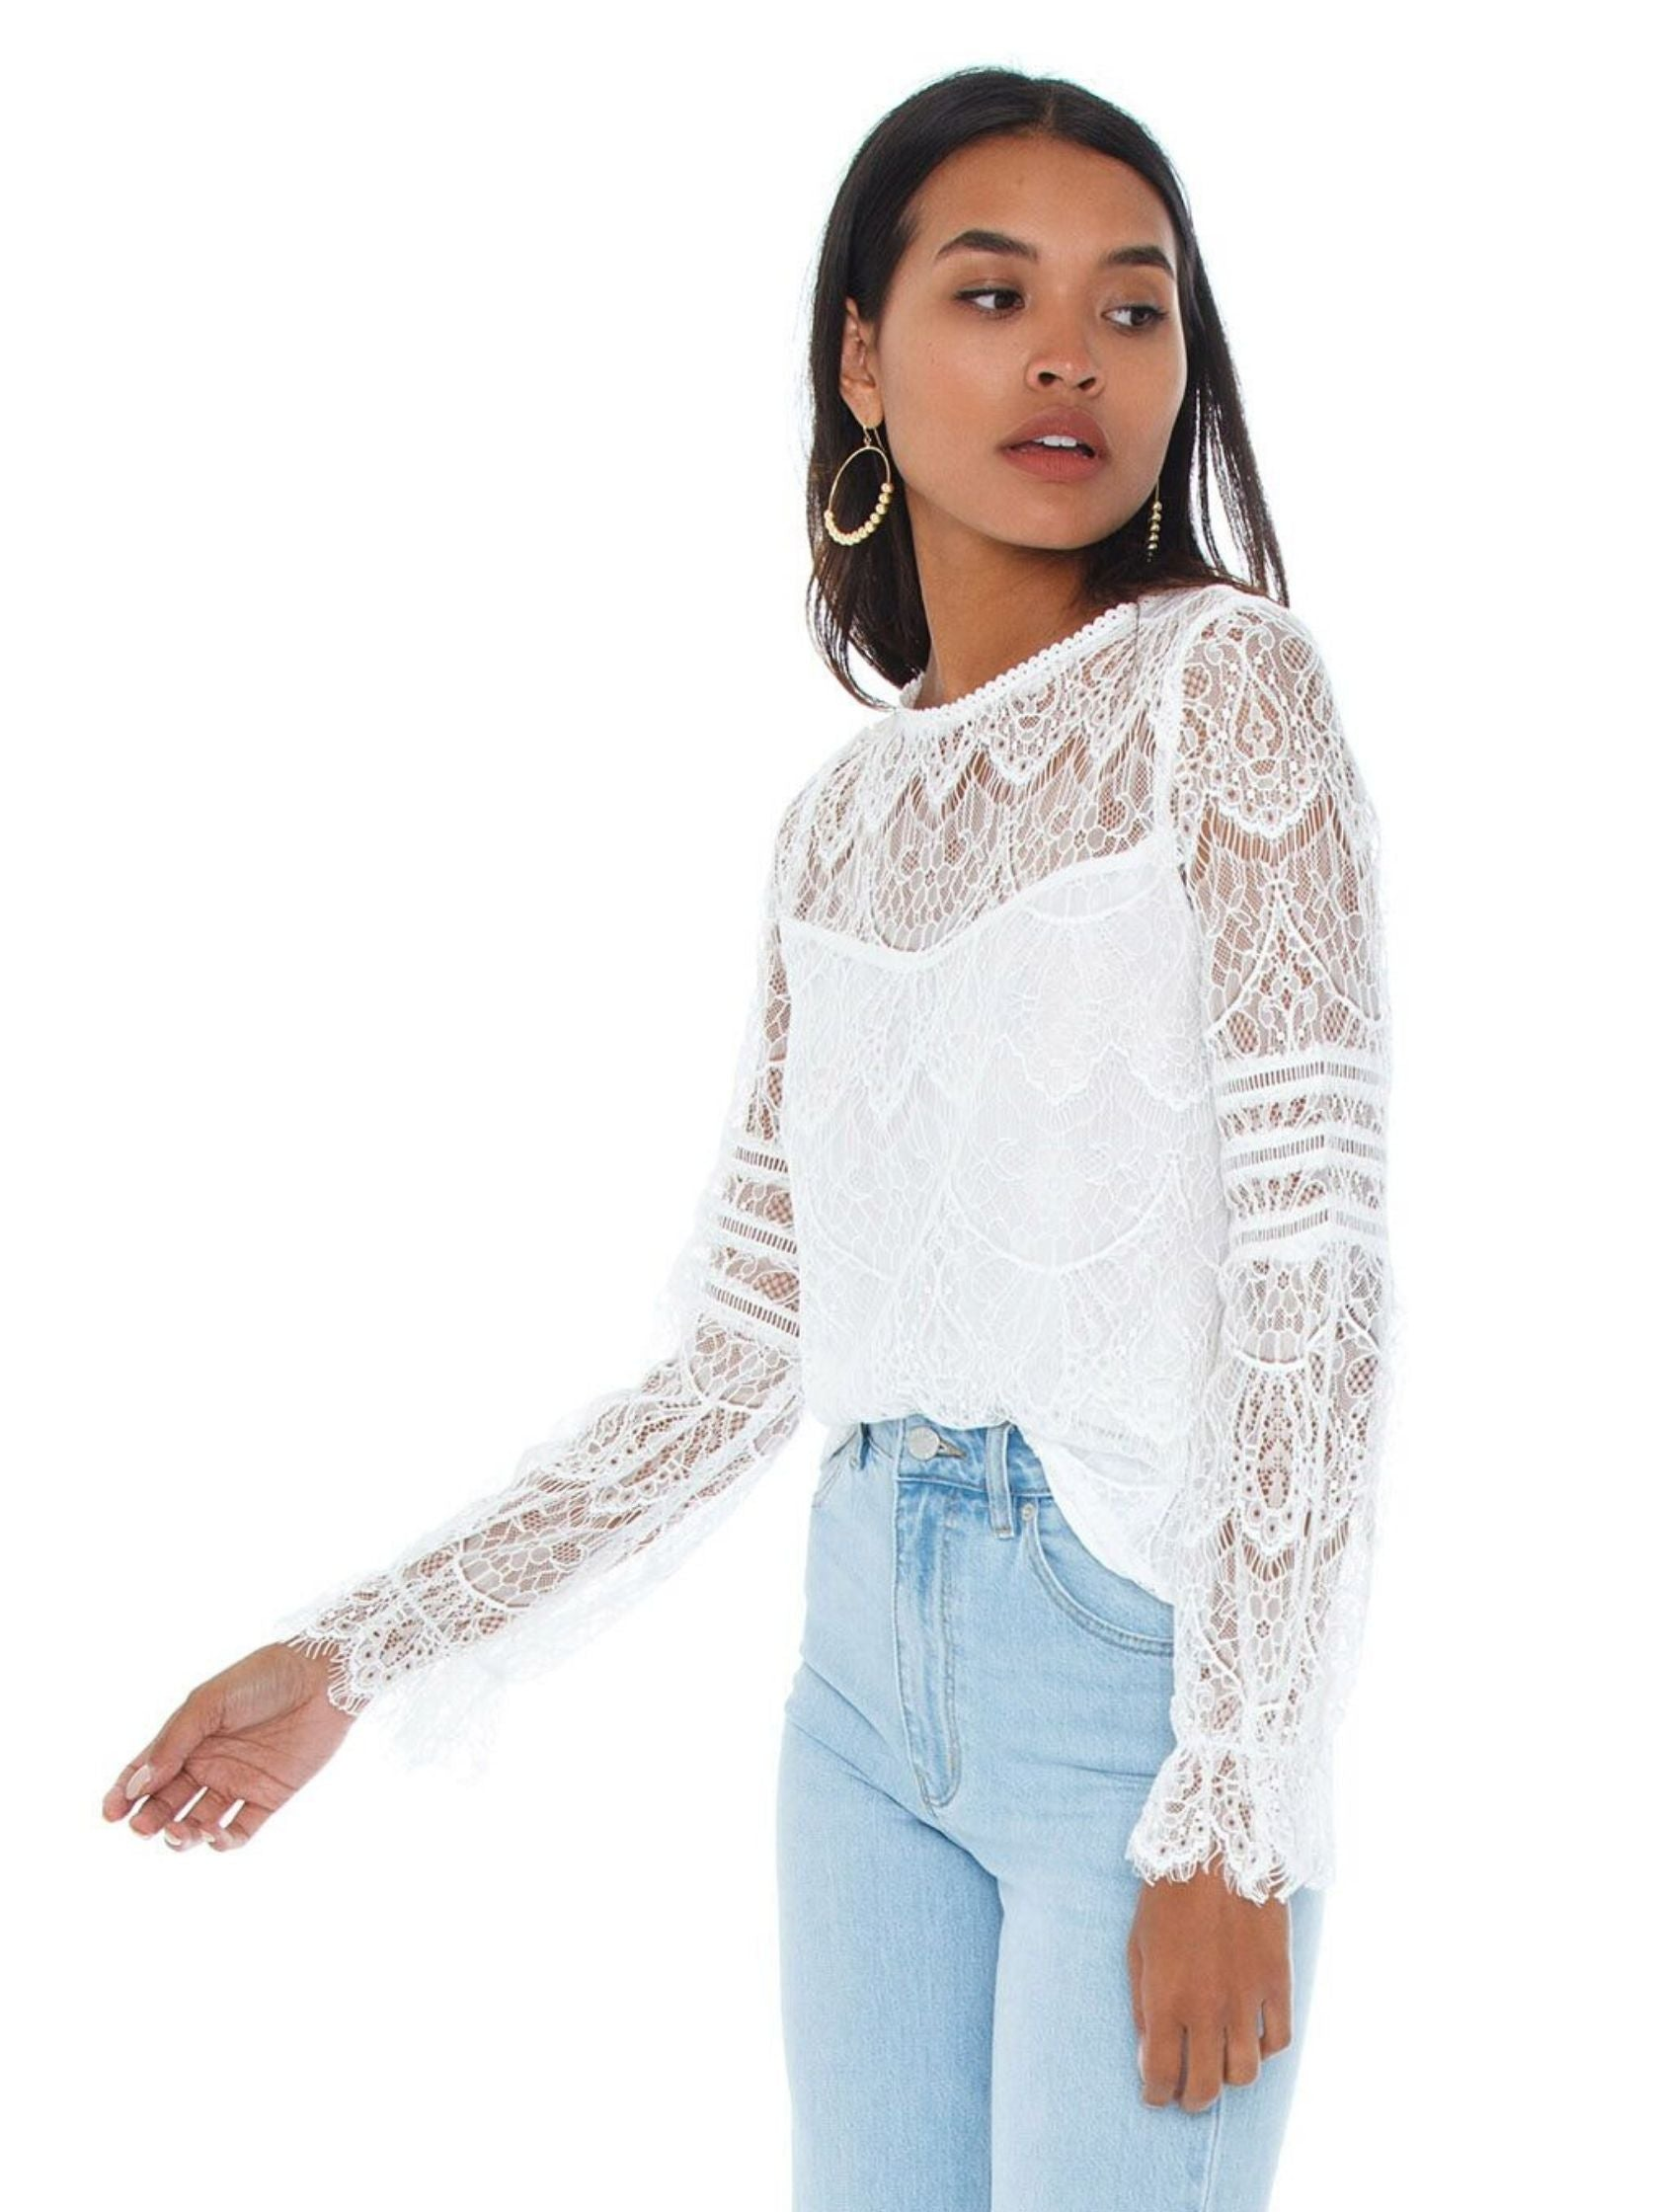 Women wearing a top rental from BB Dakota called Smoke And Mirrors Lace Blouse